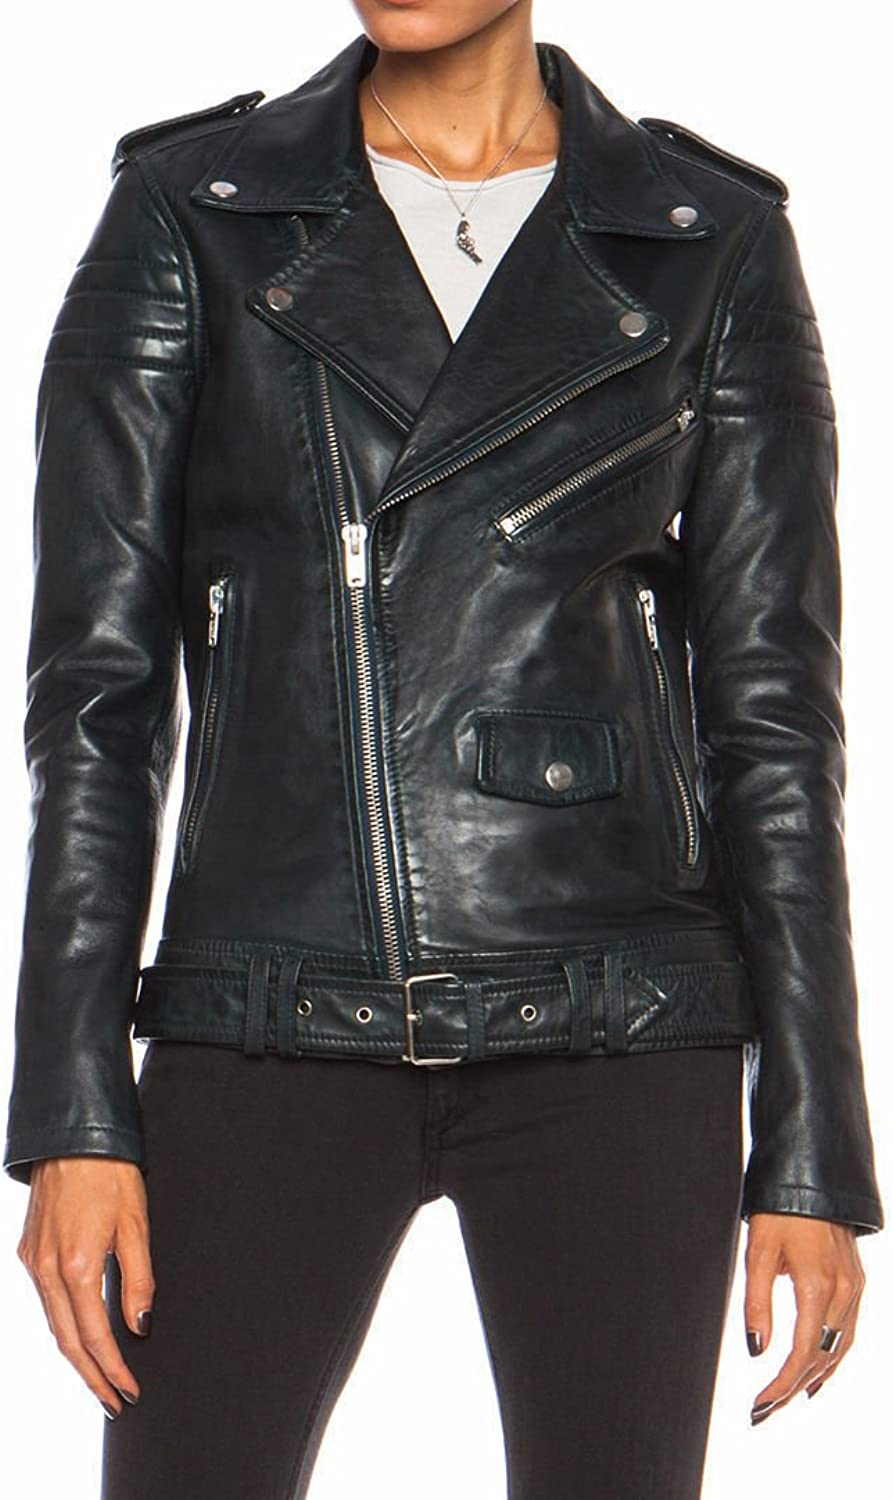 BTFashion Women's Blank NYC Black Biker Real Sheepskin Leather Jacket